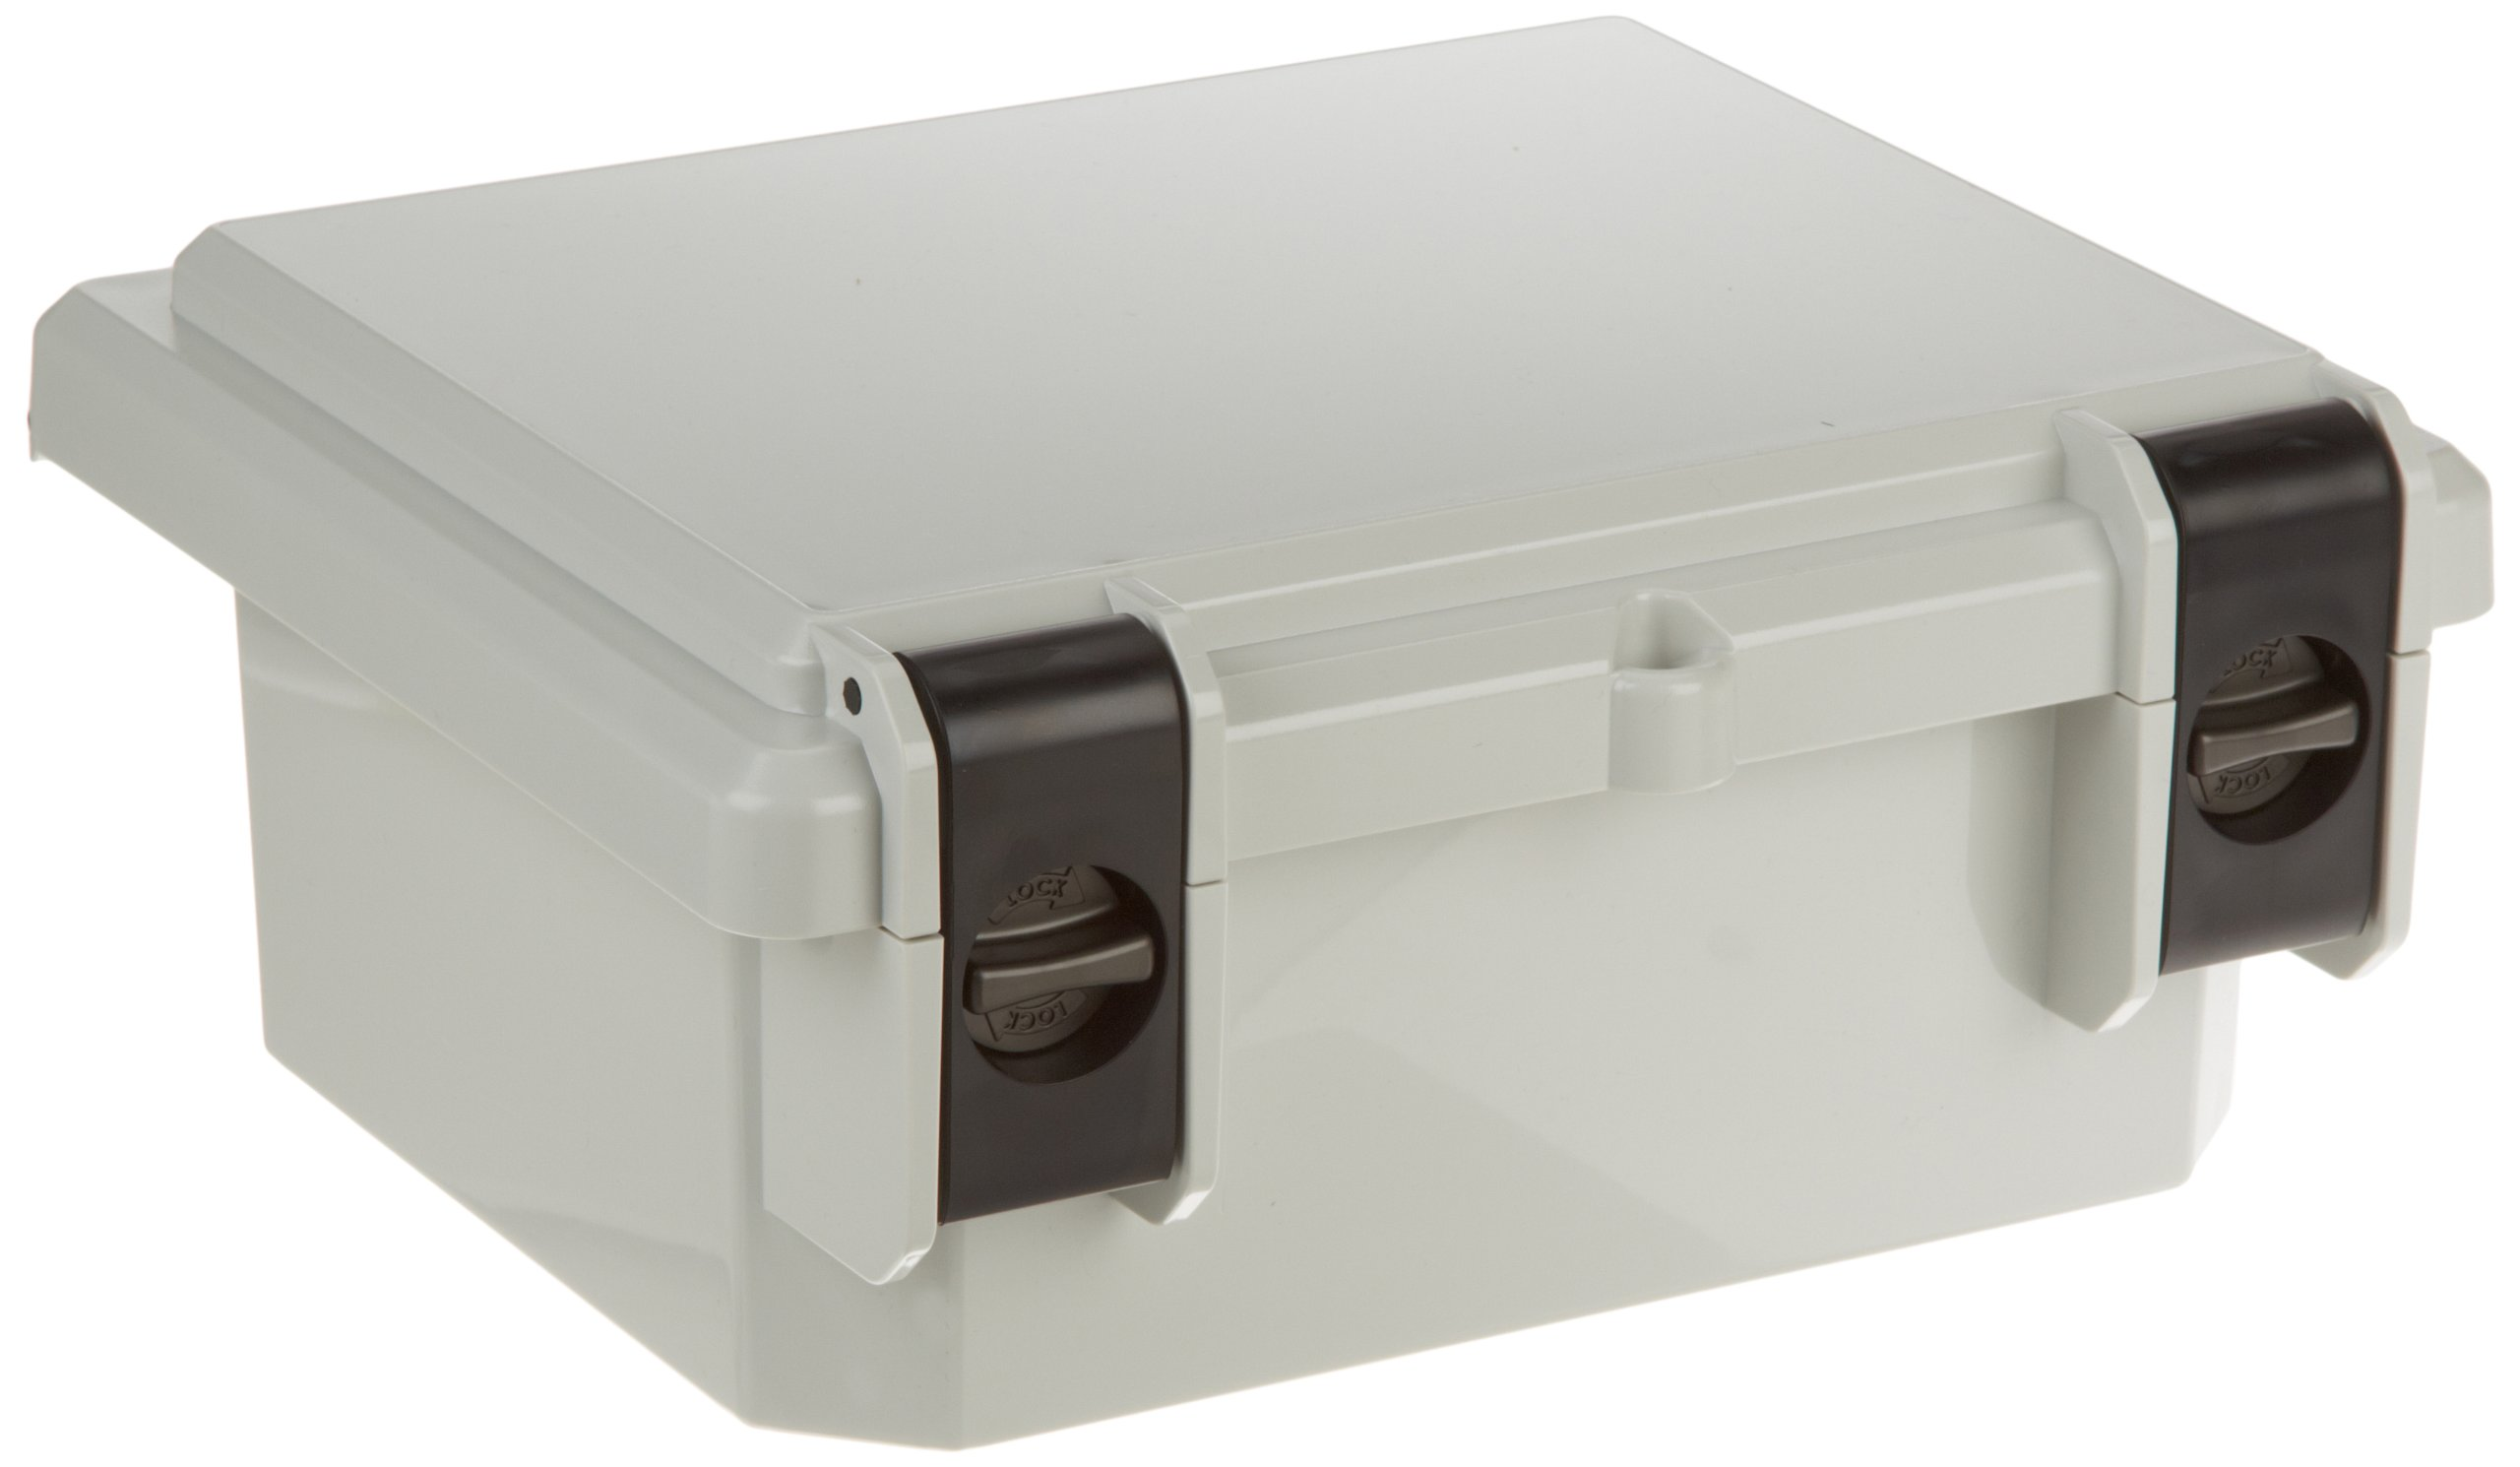 Serpac I342HL Polycarbonate Plastic Enclosure, 11-3/4'' Length x 9.98'' Width x 5.45'' Height, Gray Top/Bottom